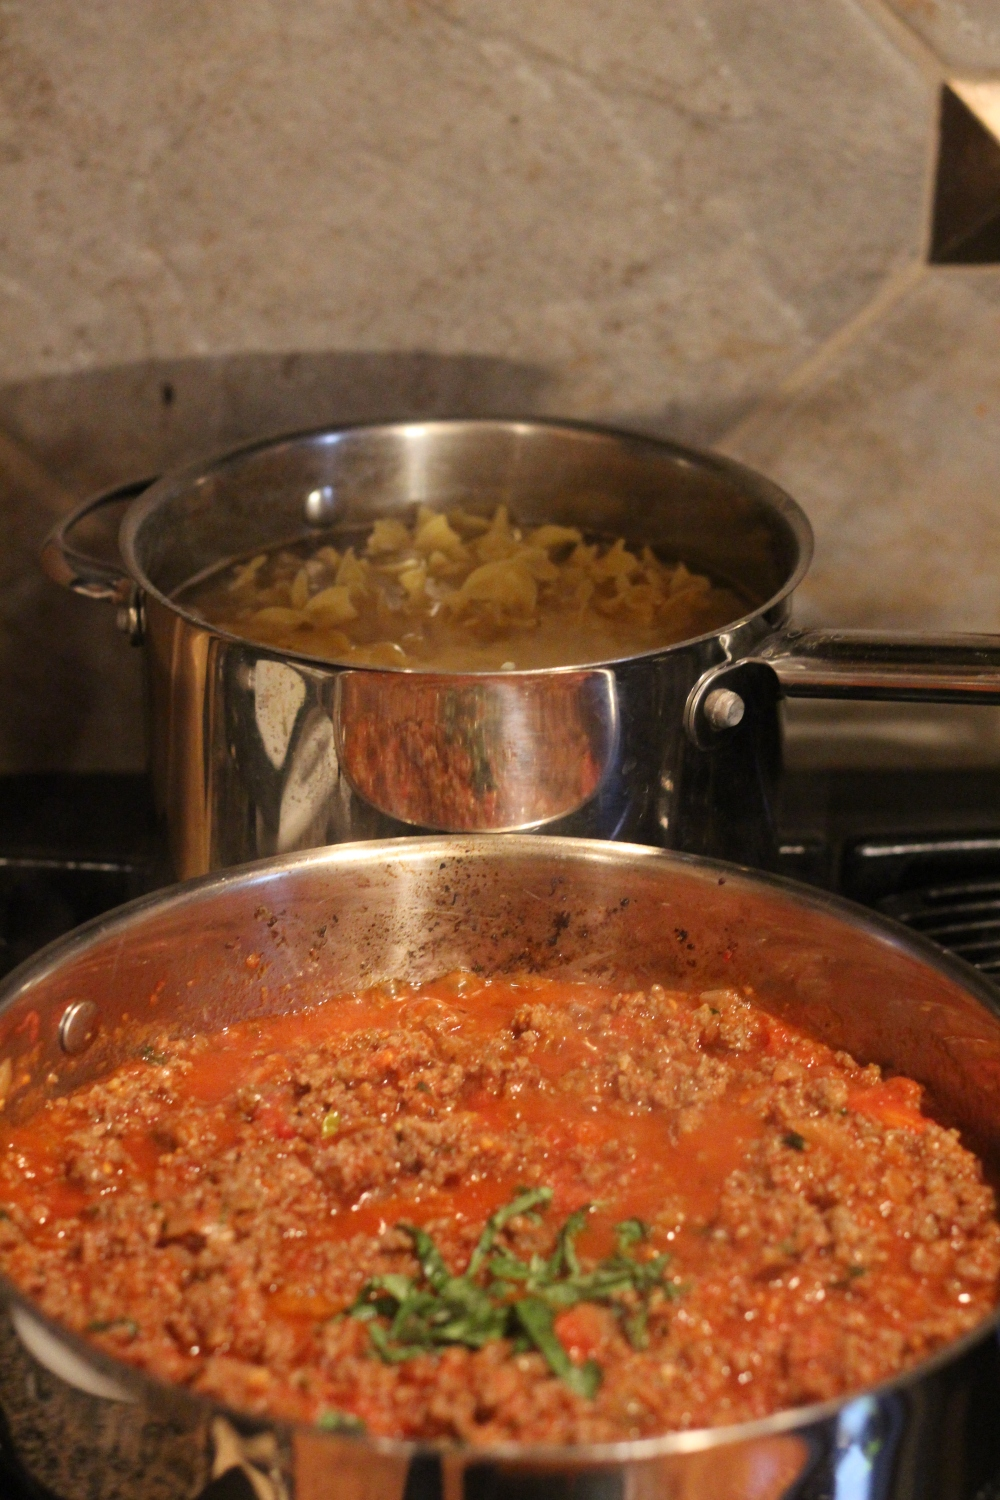 Noodles Boiling, Meat & Tomatoes Simmering.